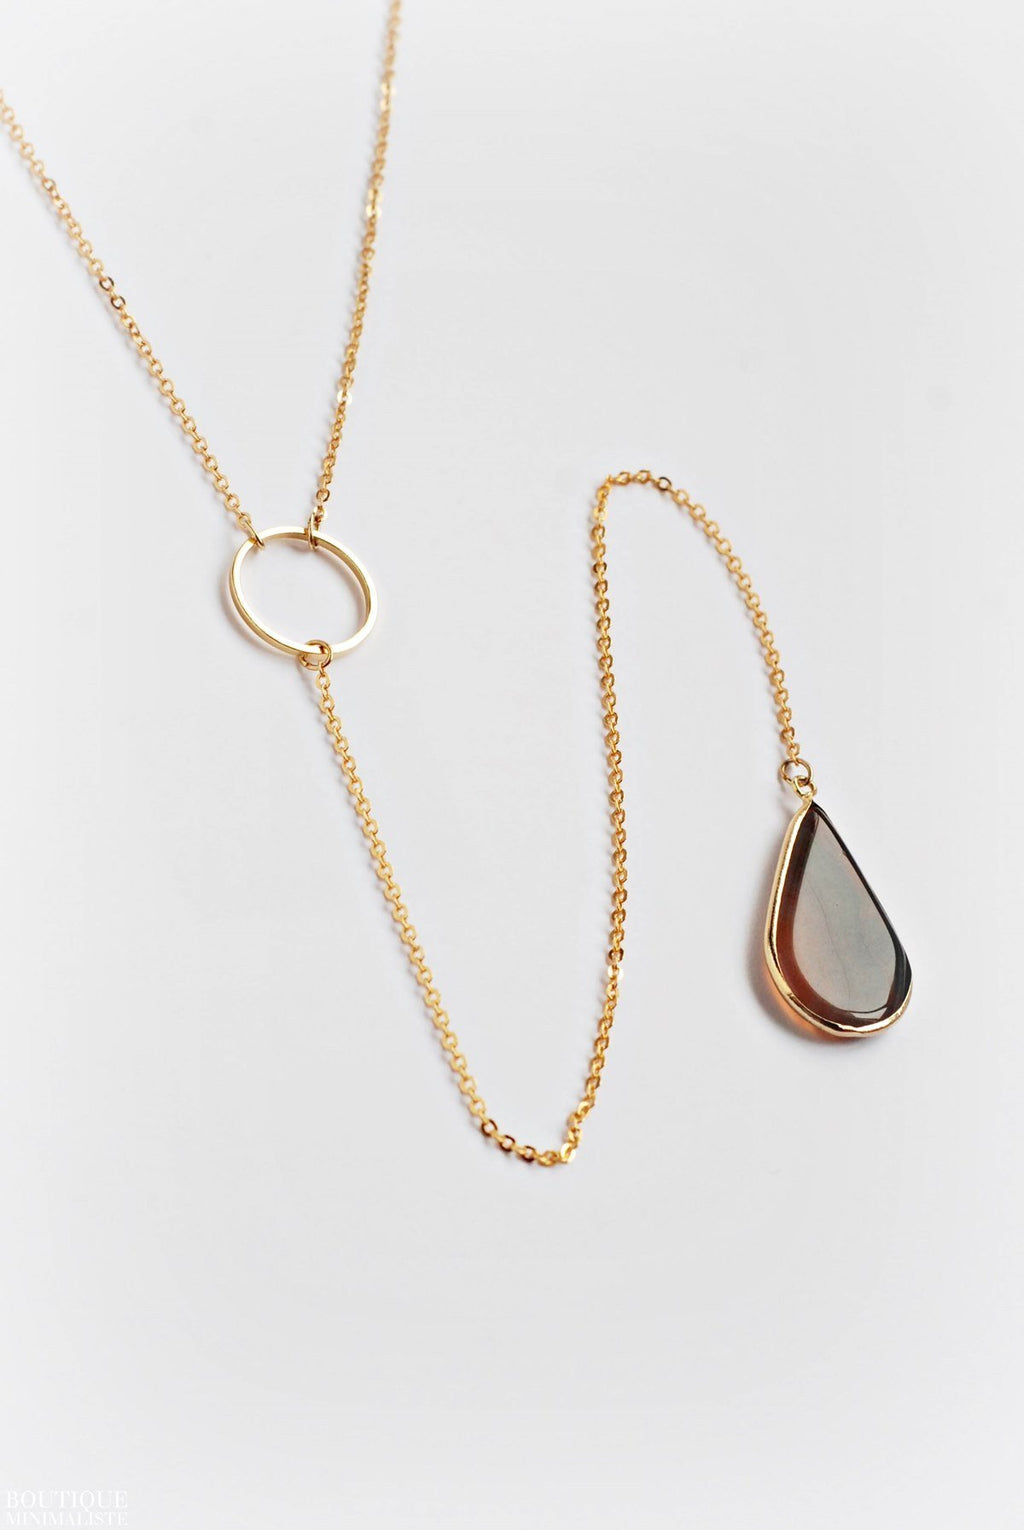 Geometric Lariat Necklace - Boutique Minimaliste